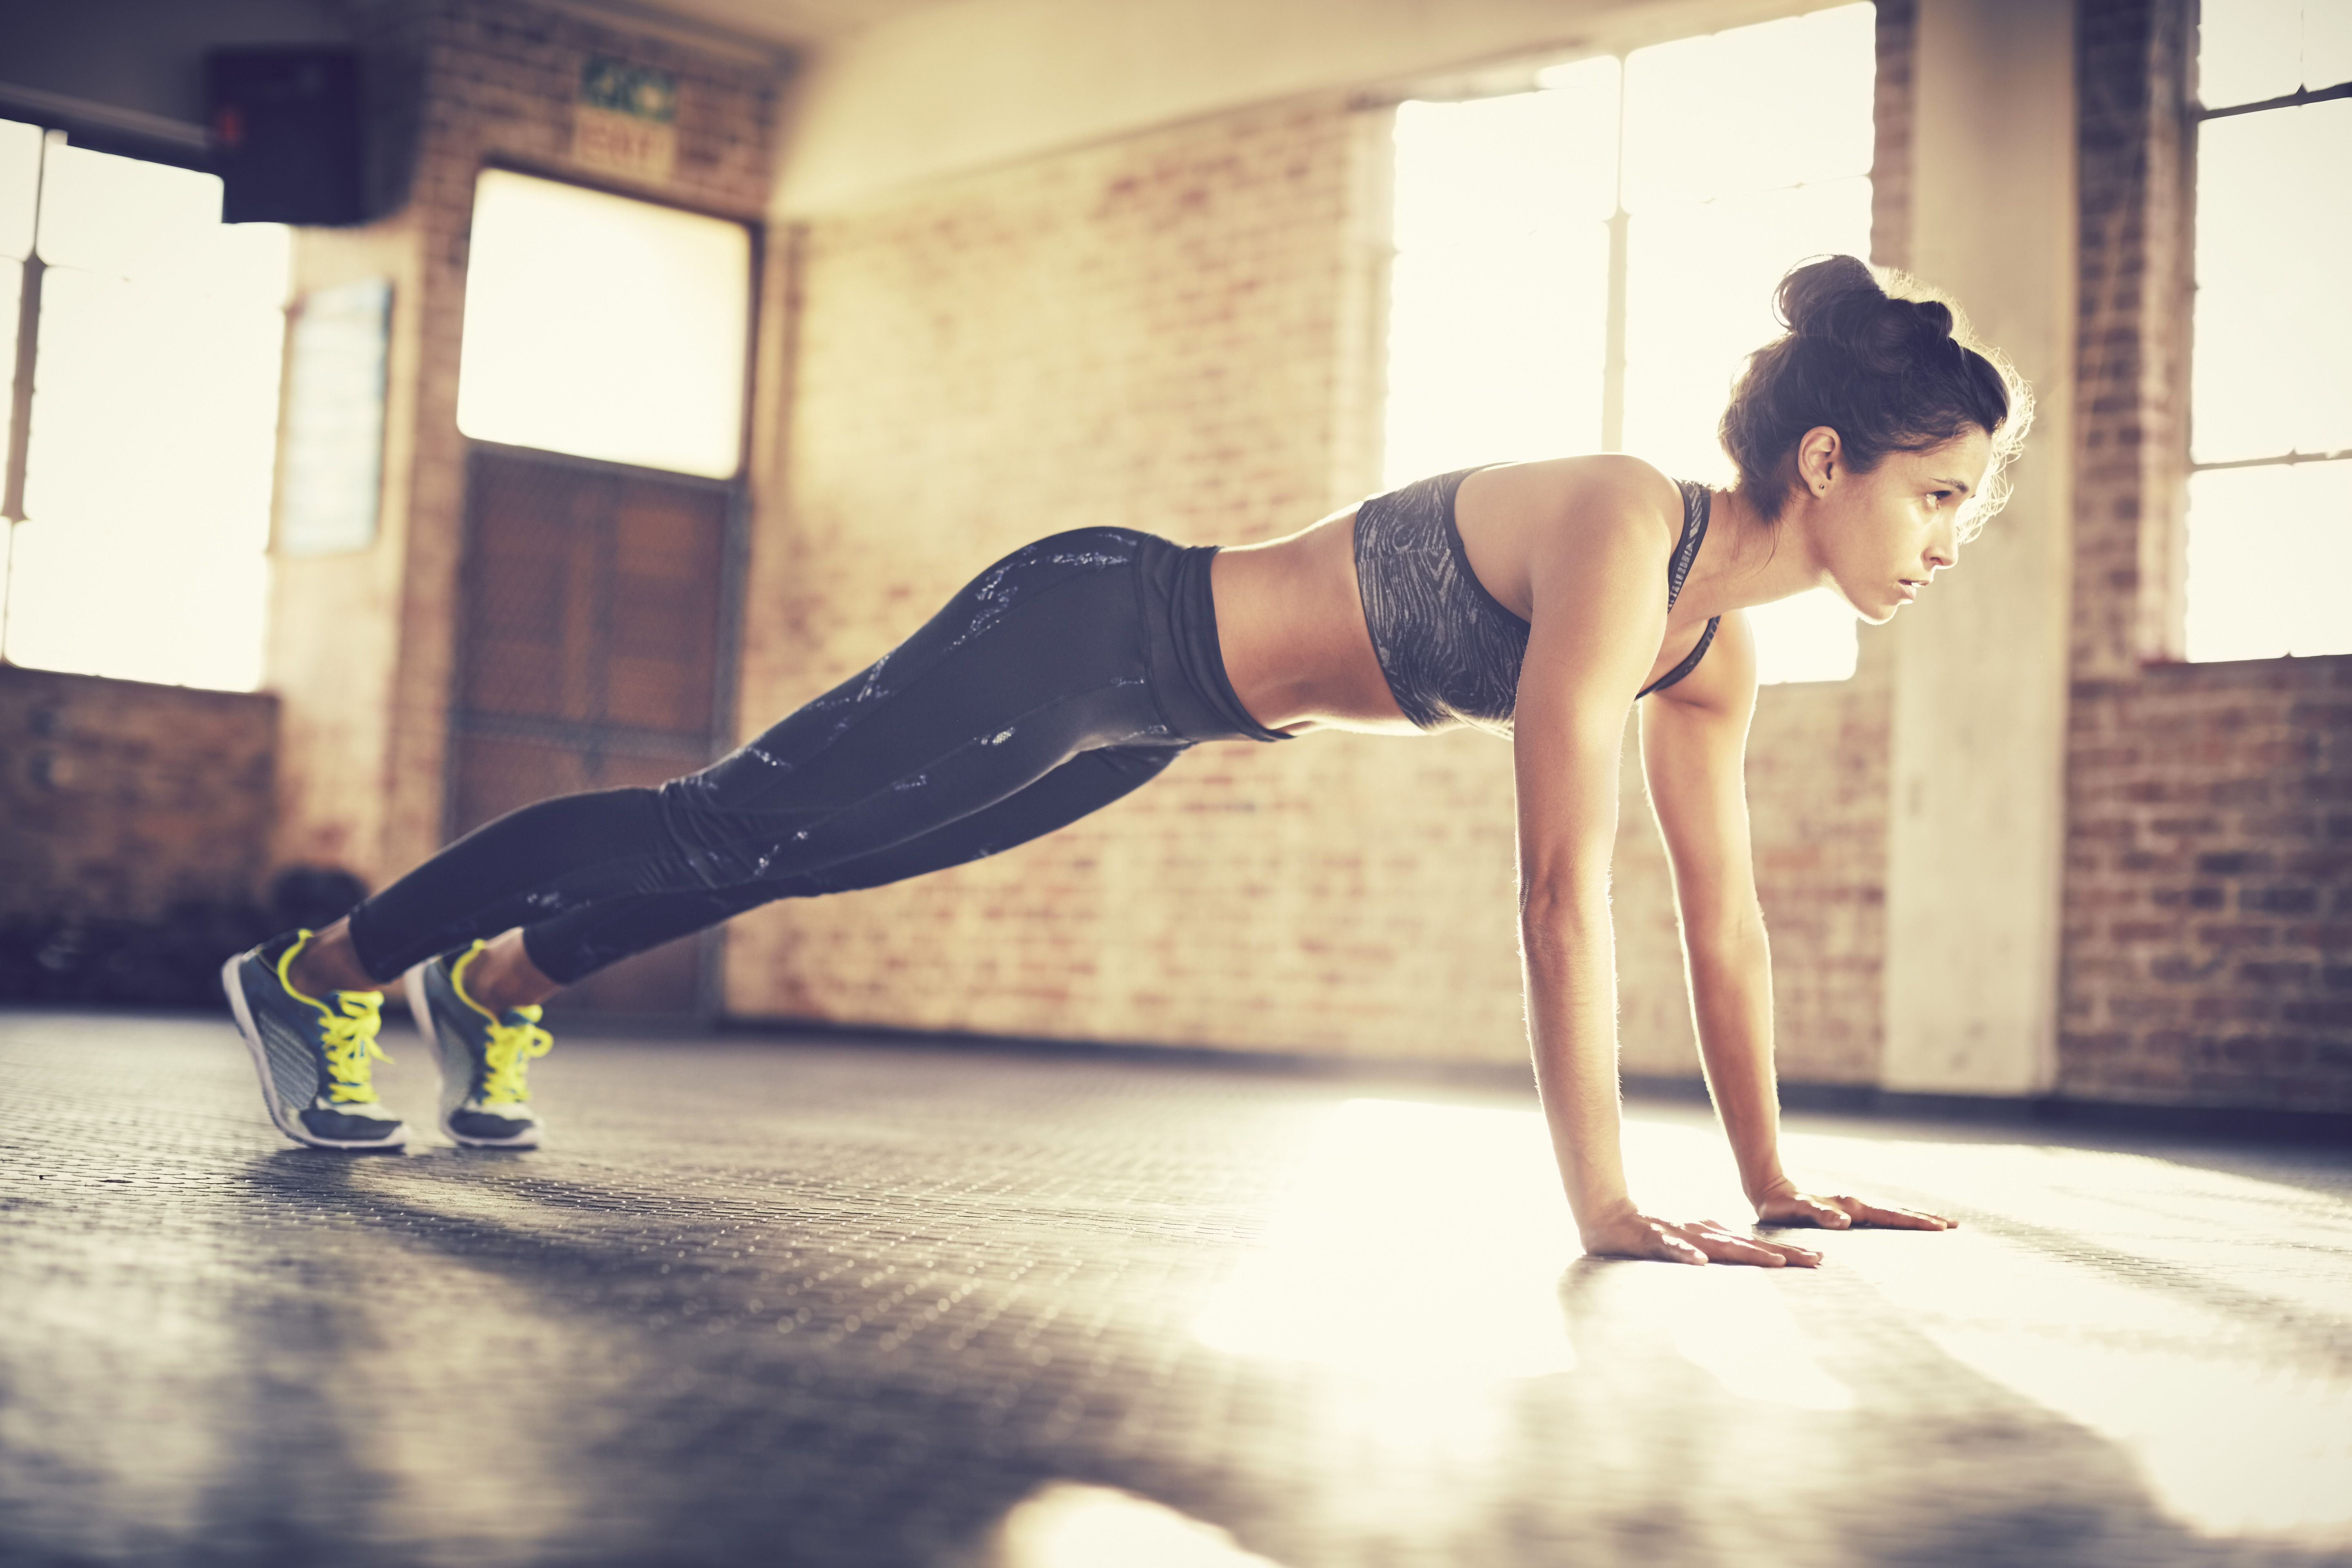 4 Plank Jack Variations to Build Strength, Stability, and Cardio